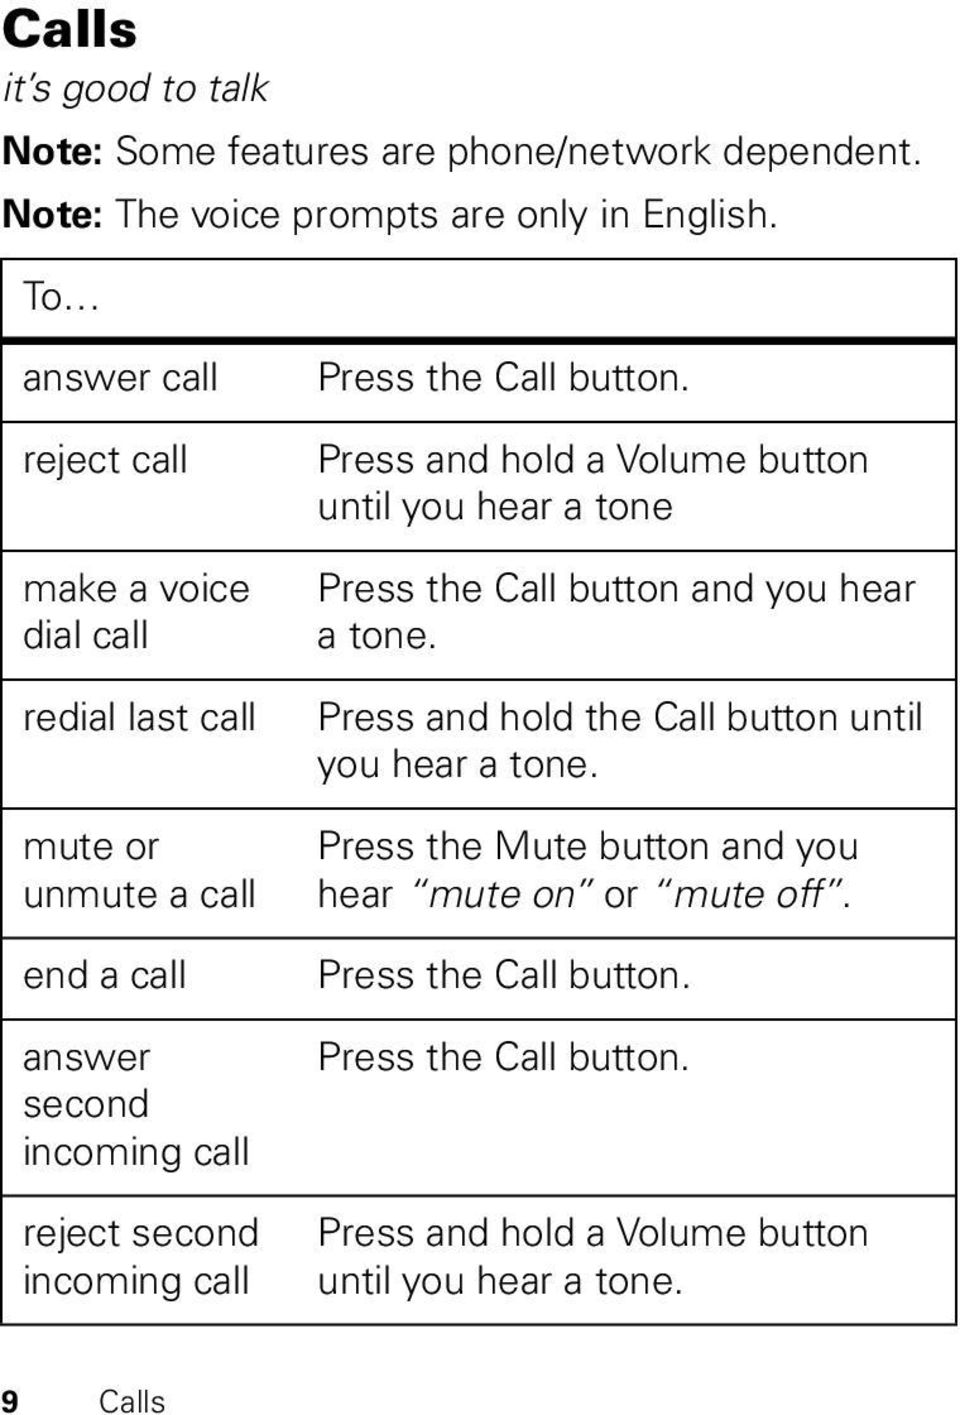 call Press the Call button. Press and hold a Volume button until you hear a tone Press the Call button and you hear a tone.